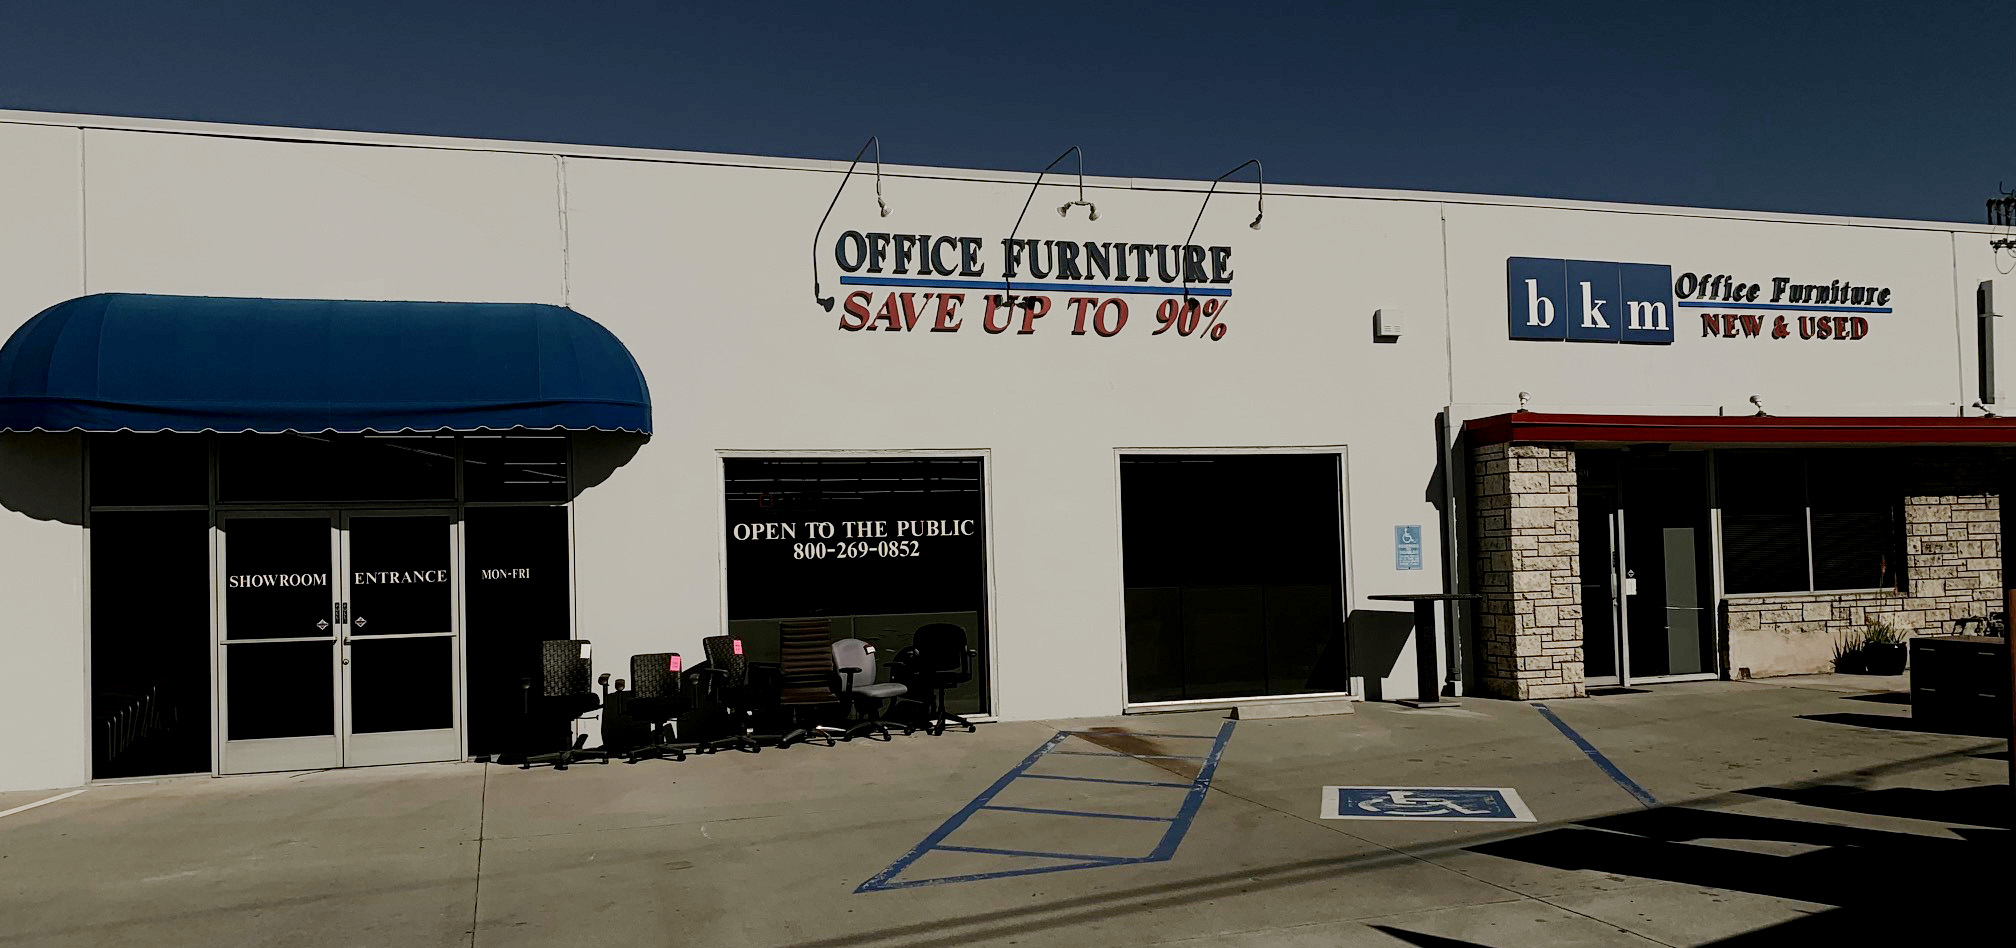 BKM Office - LA's oldest and largest new and used office furniture store